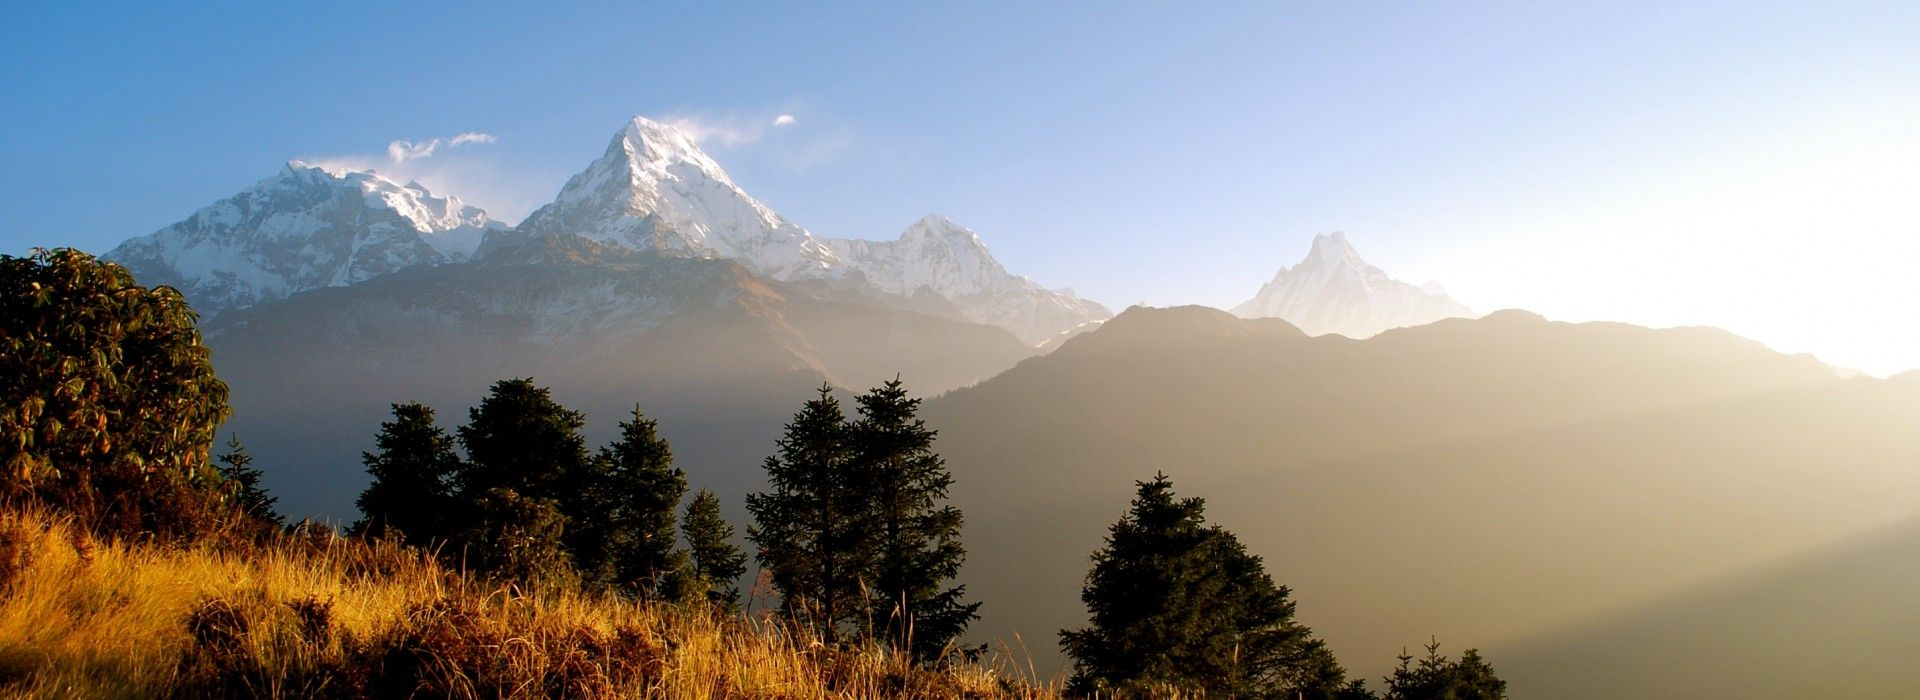 Air tours, road trips and transfers in Everest Region